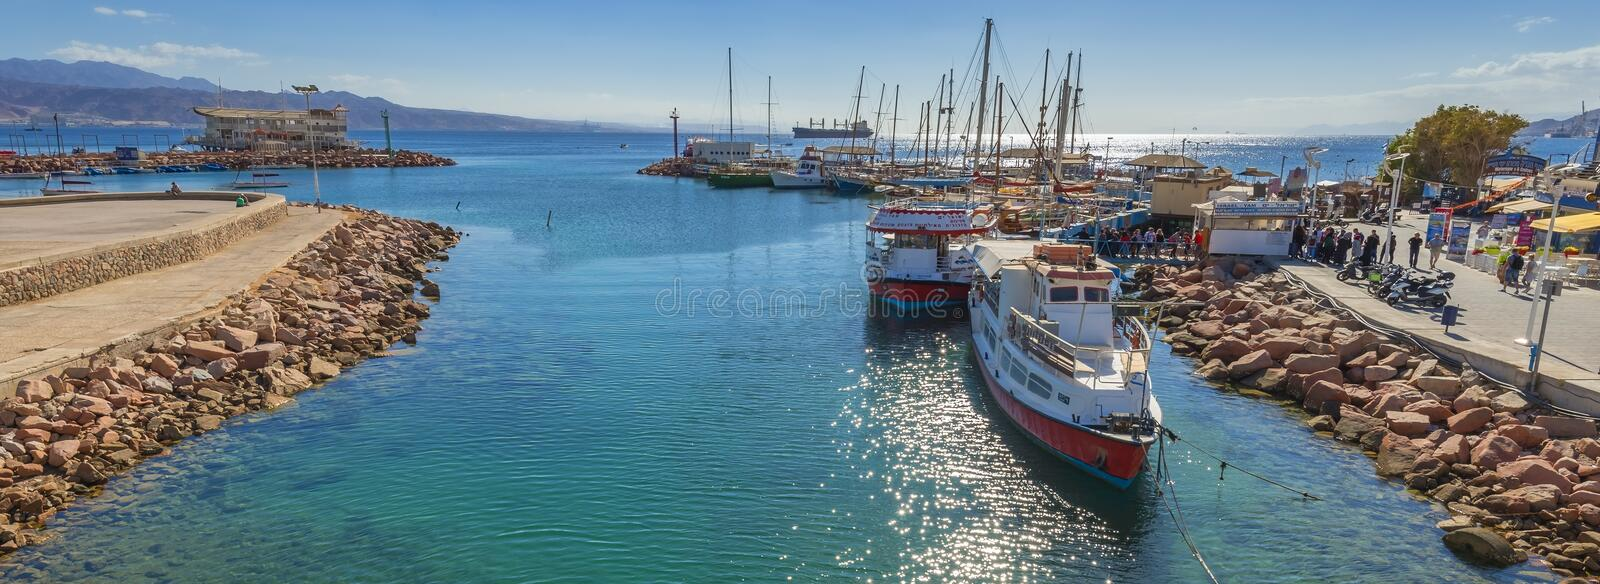 Eilat, Israel - January 15, 2018: Central marina with pleasure boats and yachts in Eilat. Eilat is a famous resort and recreational city in the Middle East royalty free stock image